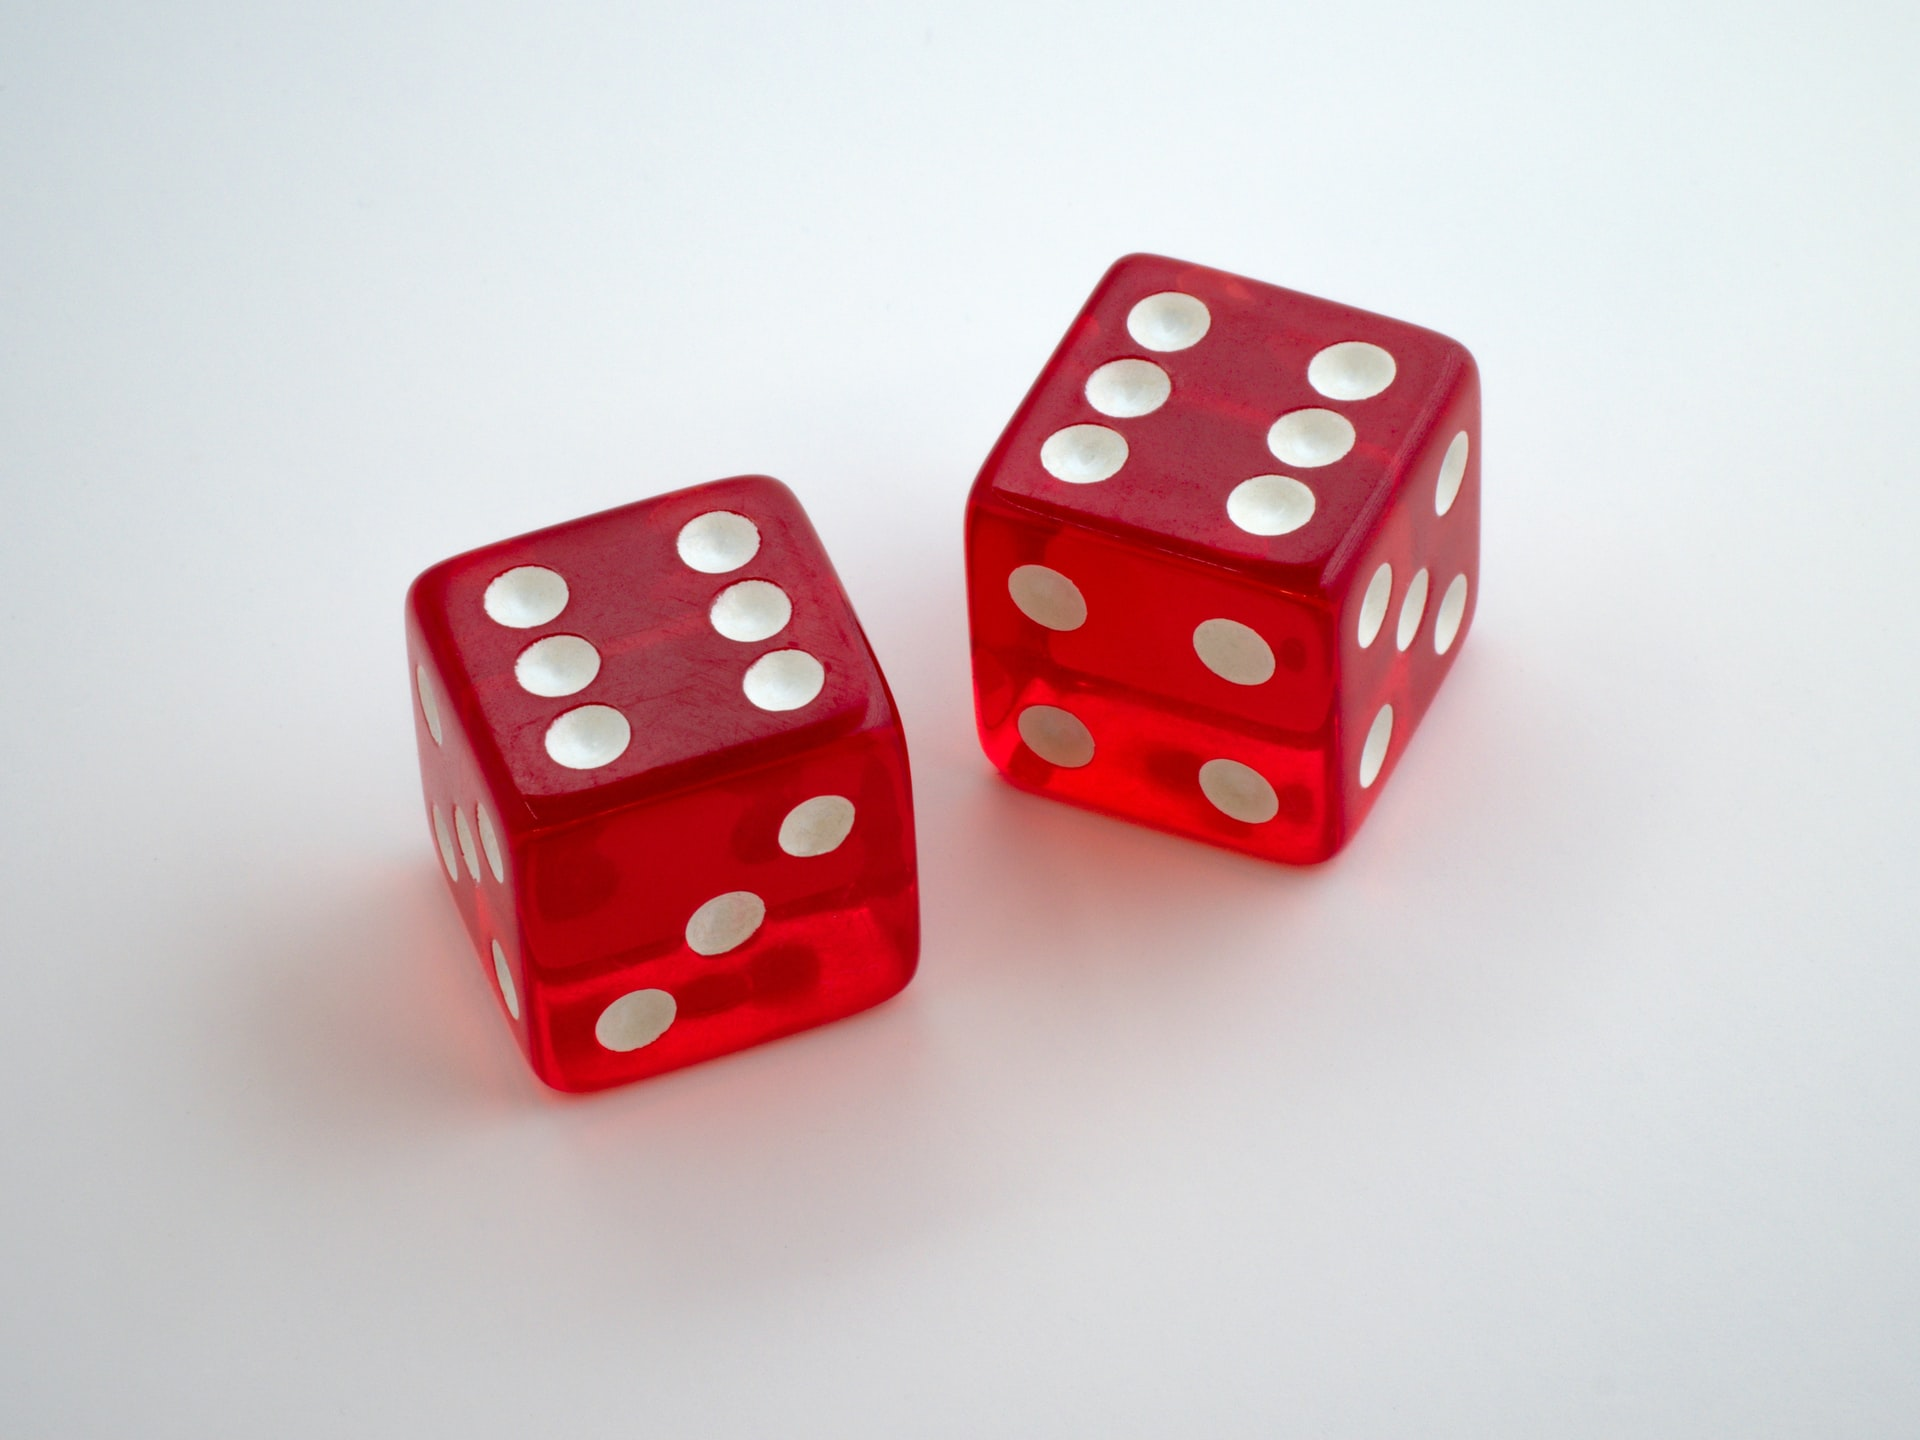 Two dice showing sixes